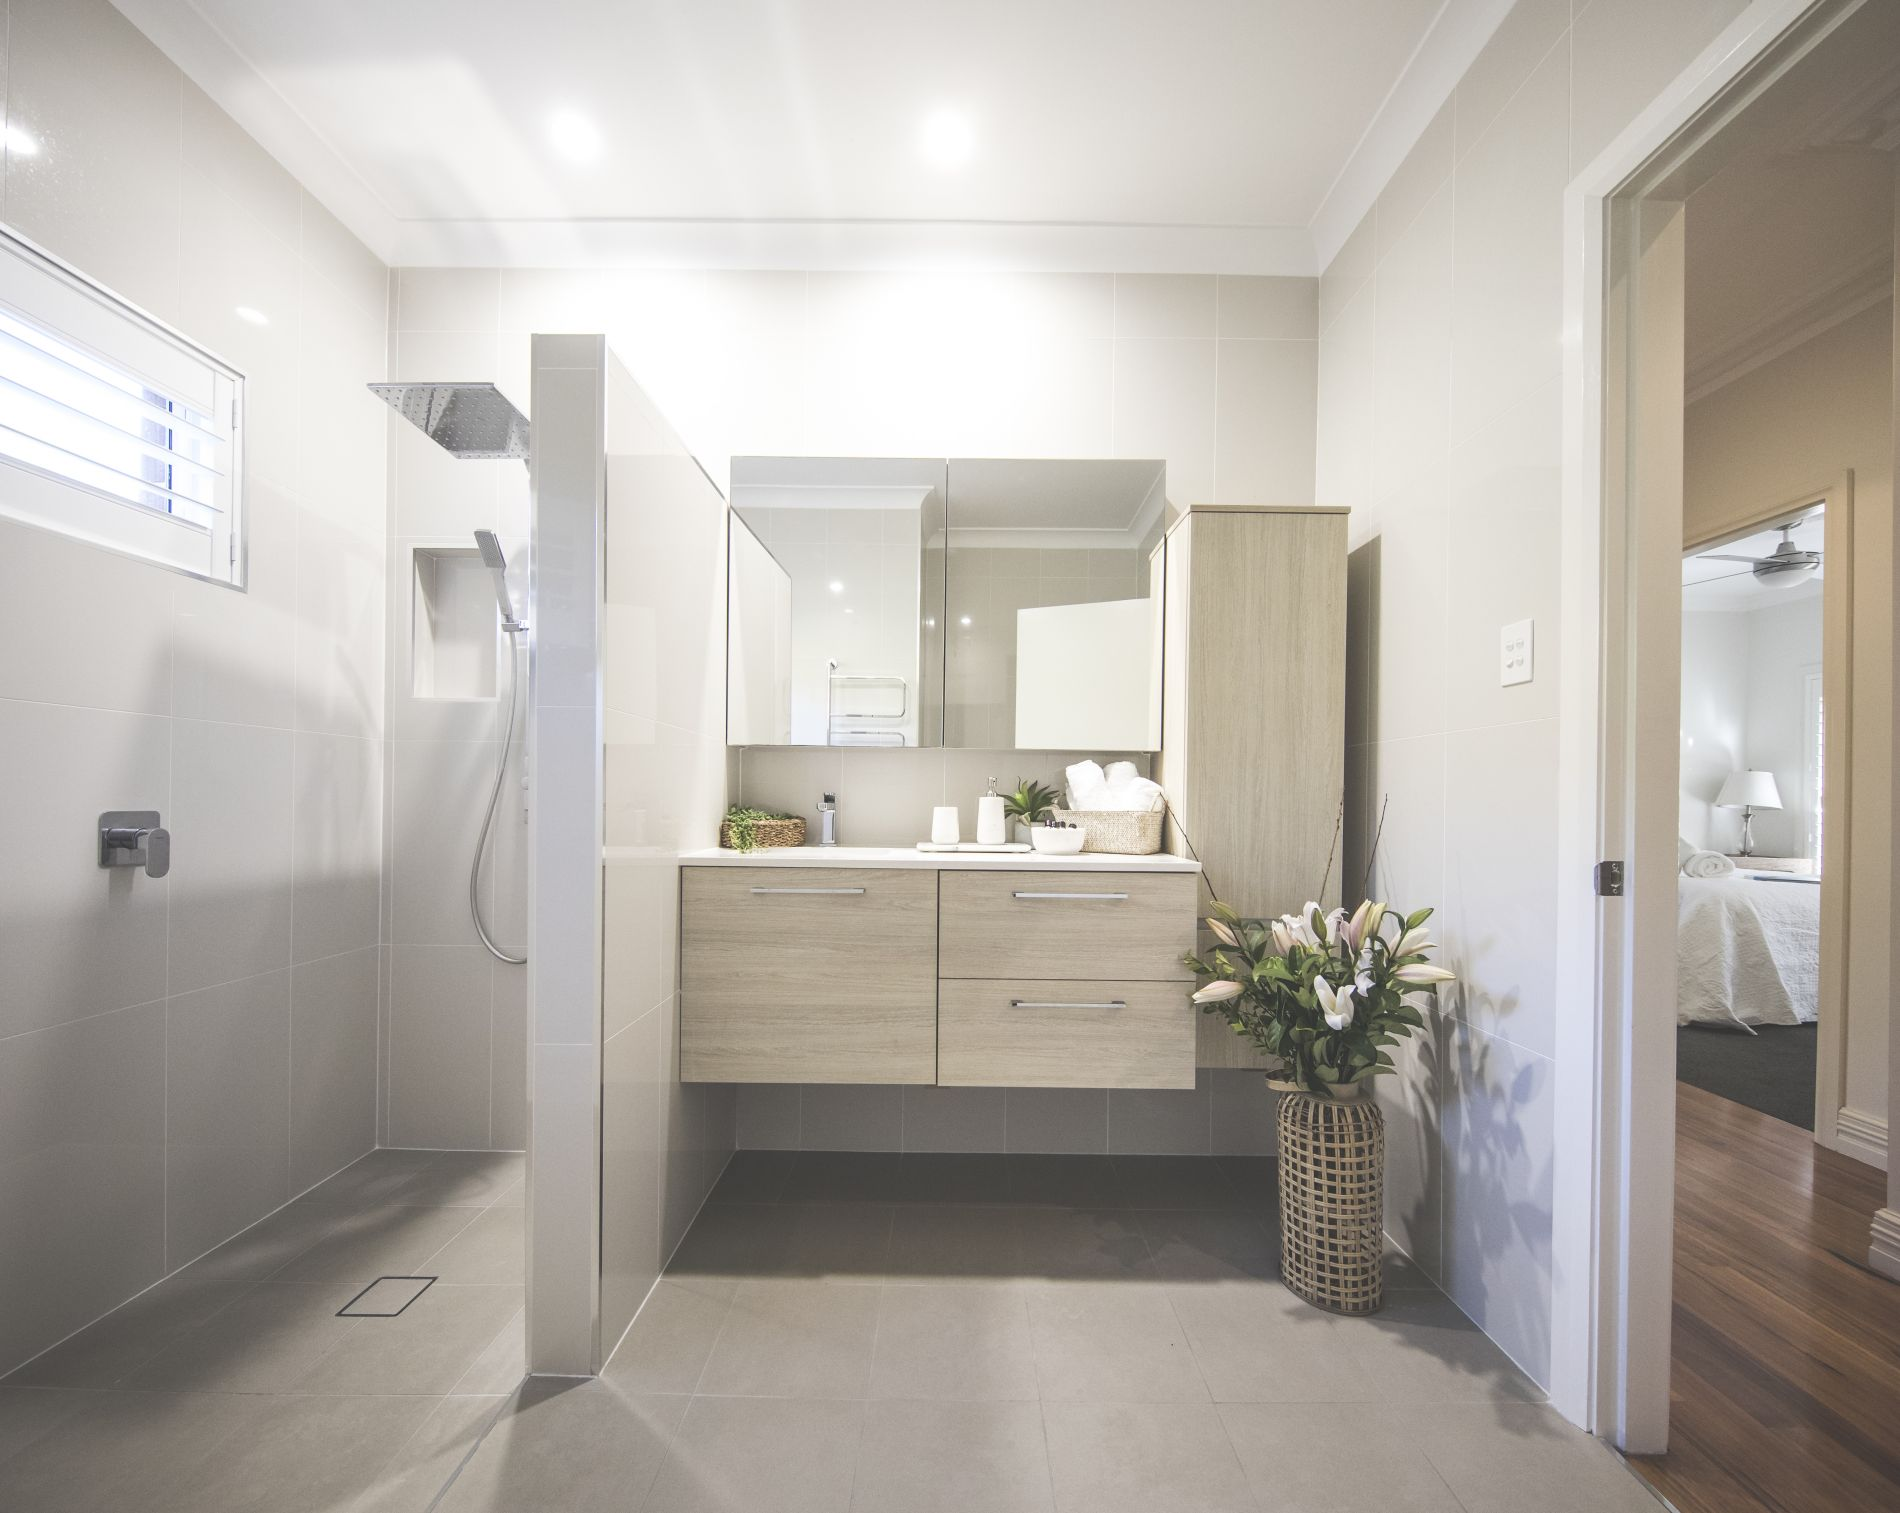 Modern sleek bathroom with shower and sink at diggers beach cottage